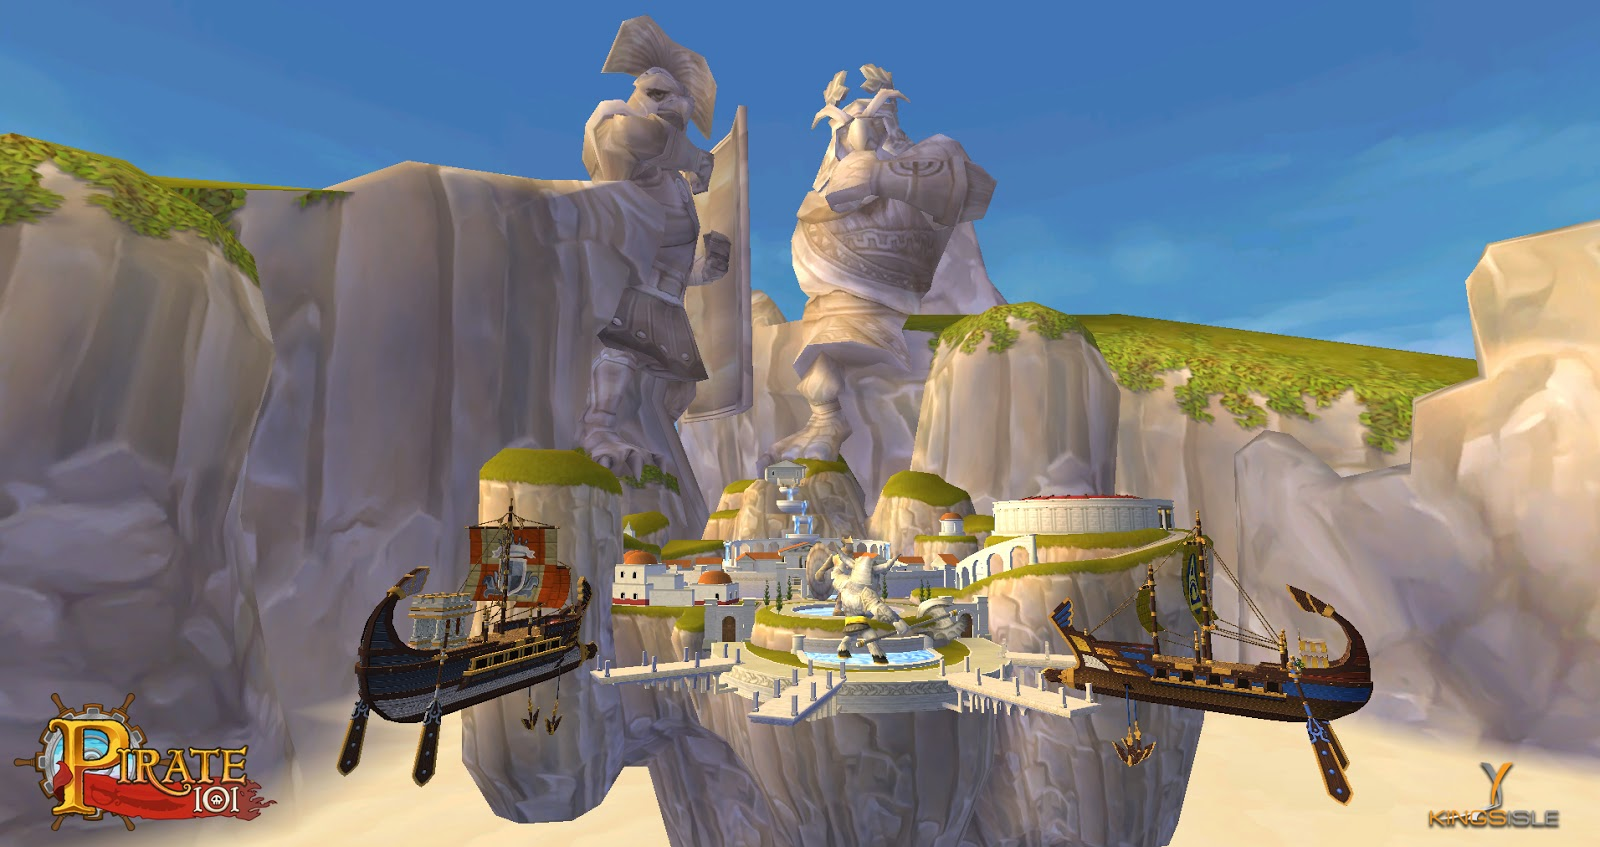 New Pirate101 Background Images! ~ Secrets of the Spiral